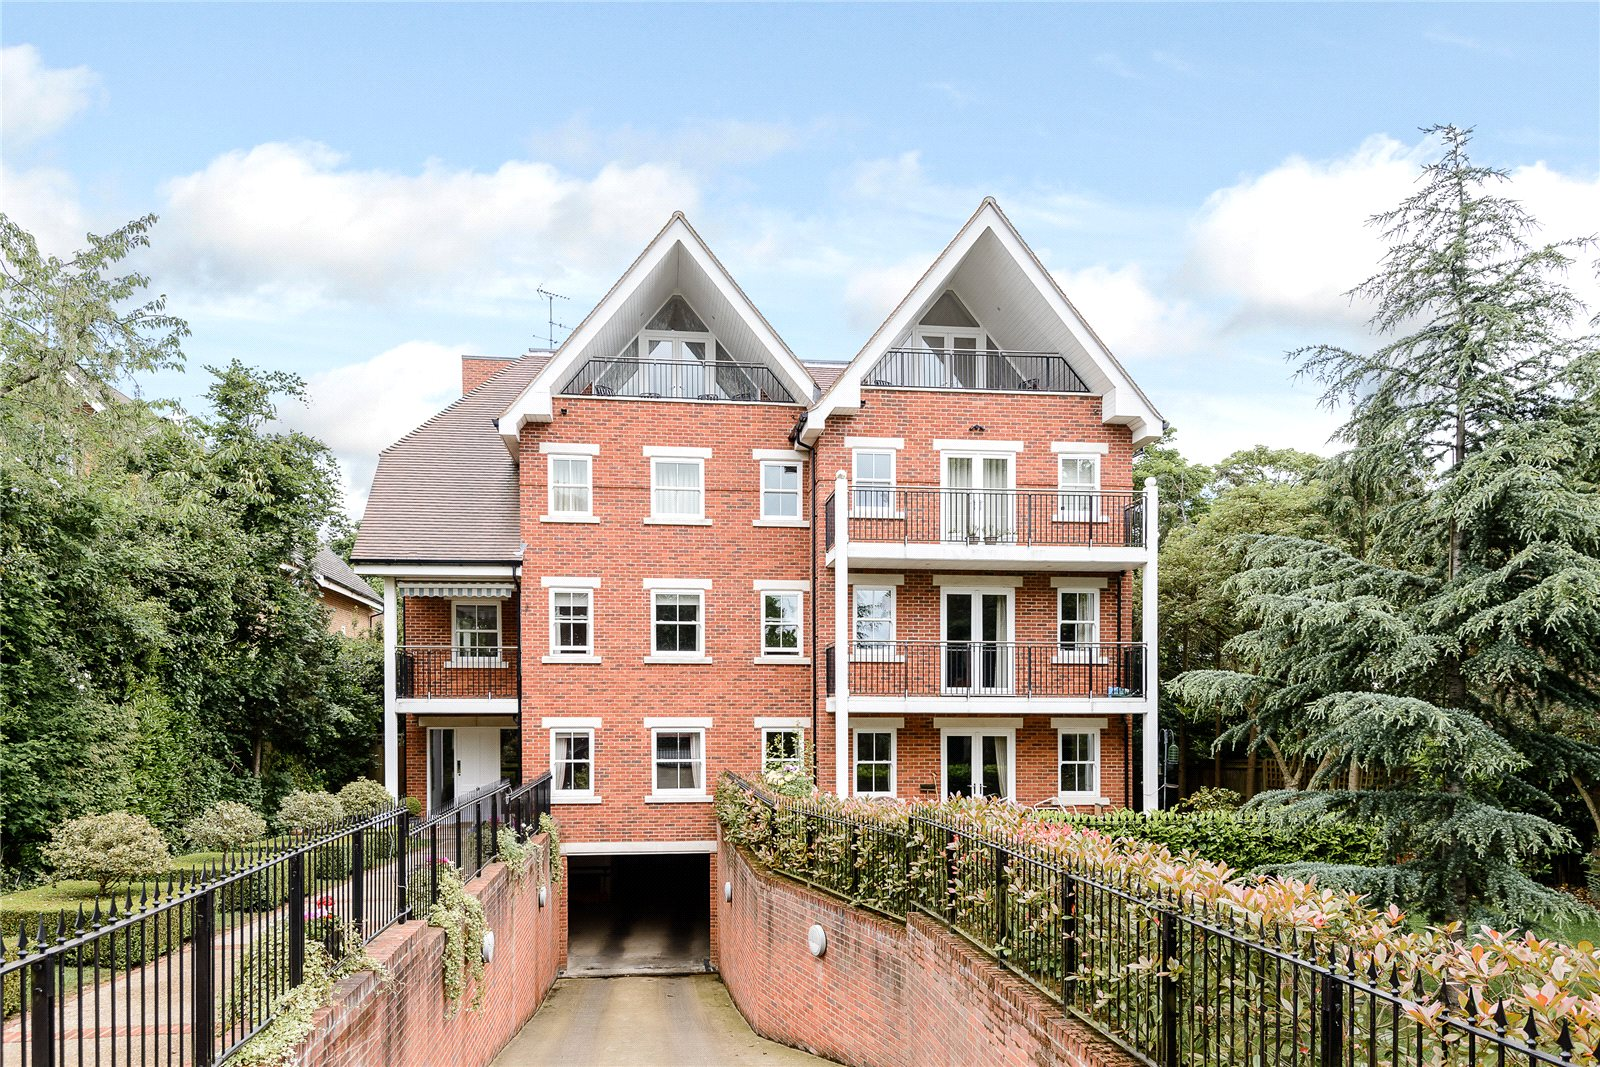 Appartement pour l Vente à Claremont Court, 76 Packhorse Road, Gerrards Cross, Buckinghamshire, SL9 Gerrards Cross, Angleterre